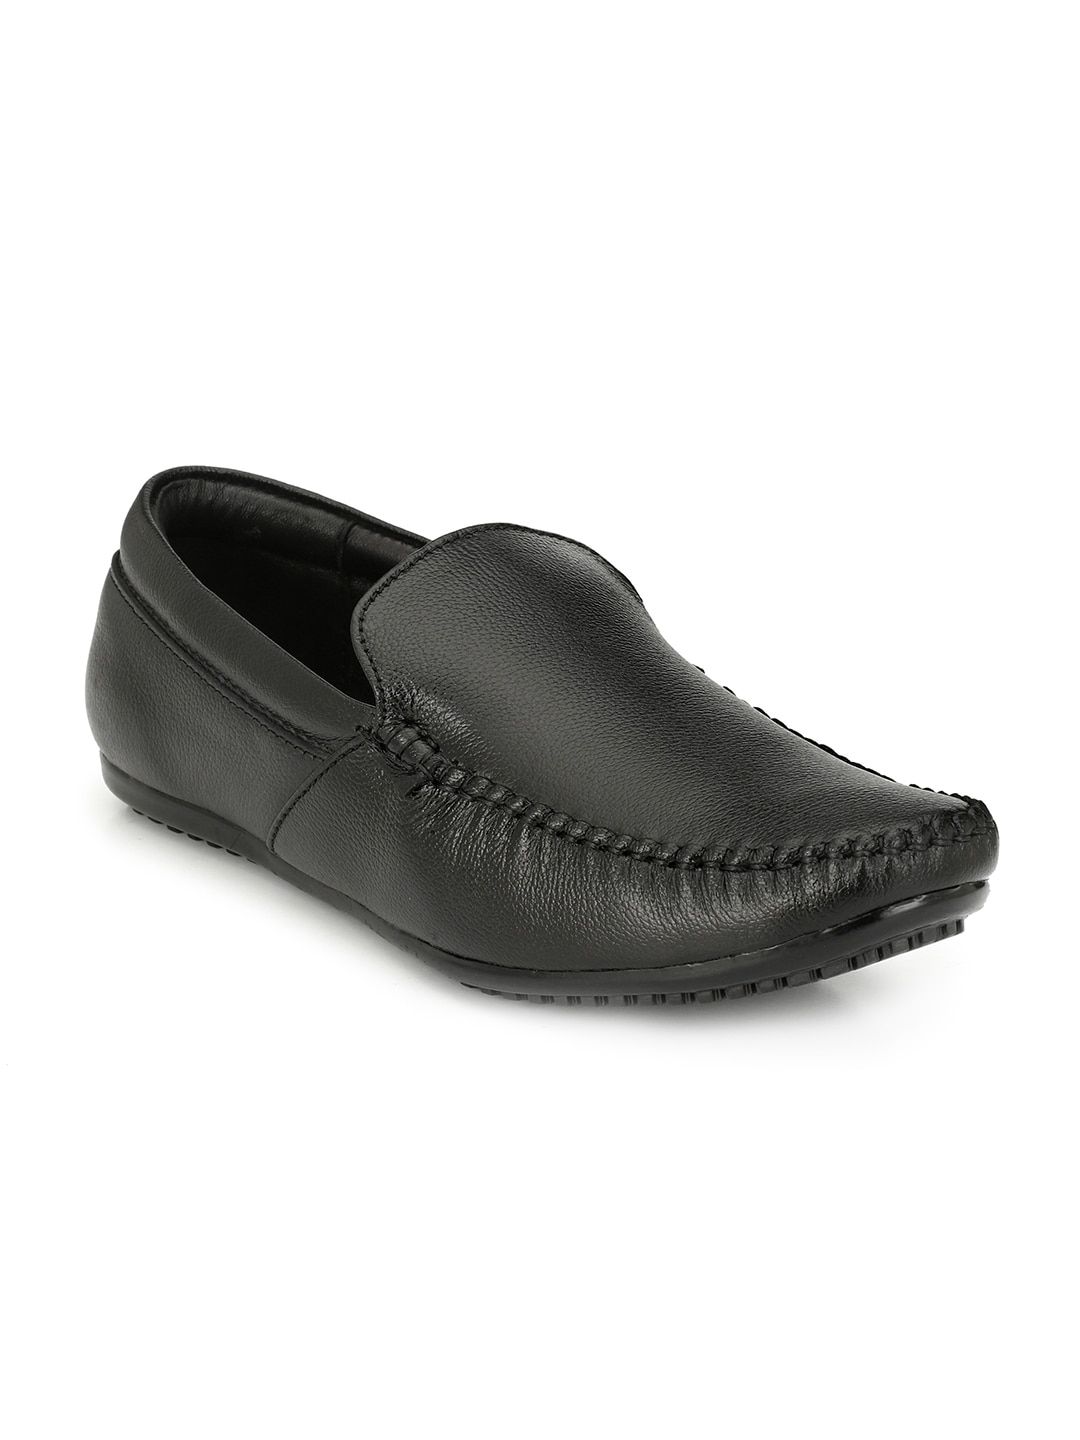 e0b00311e56 Loafers Shoes For Men - Buy Loafers Shoes For Men online in India